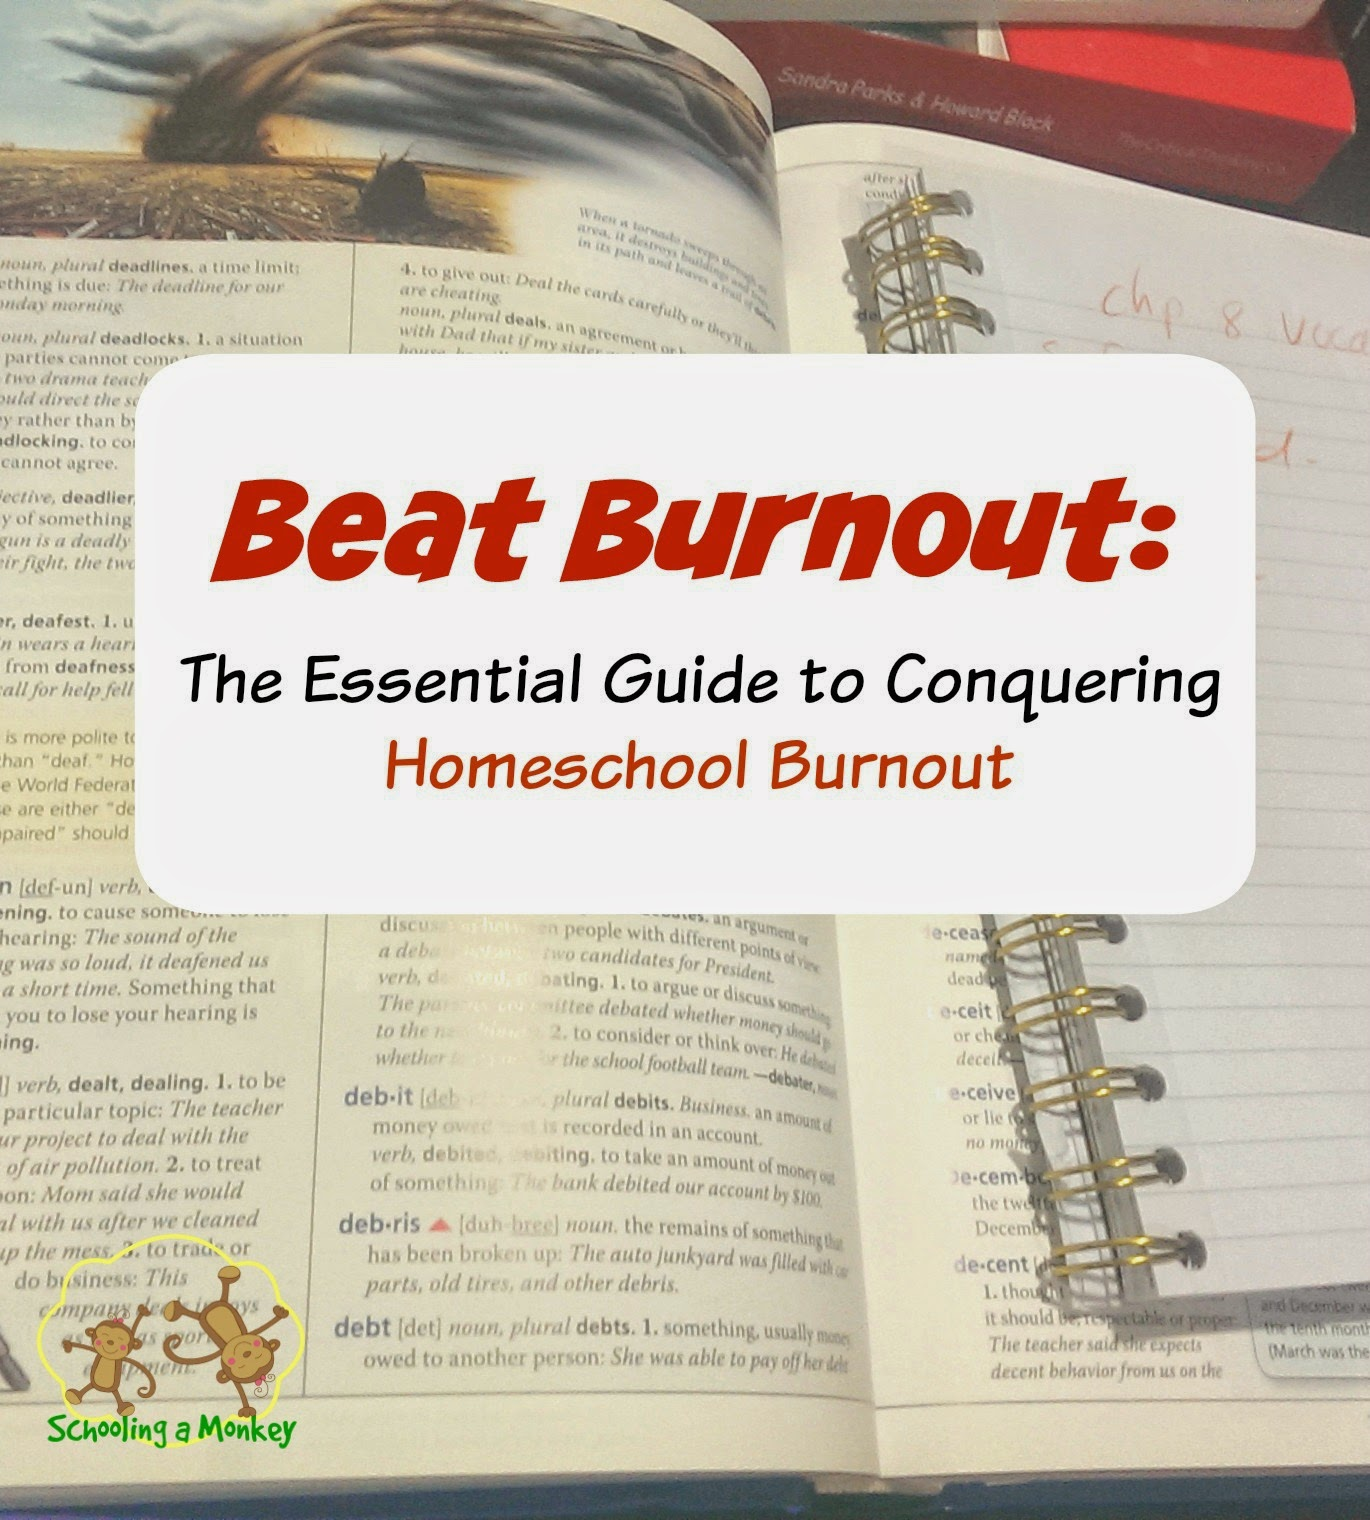 The Essential Guide to Conquer Homeschool Burnout